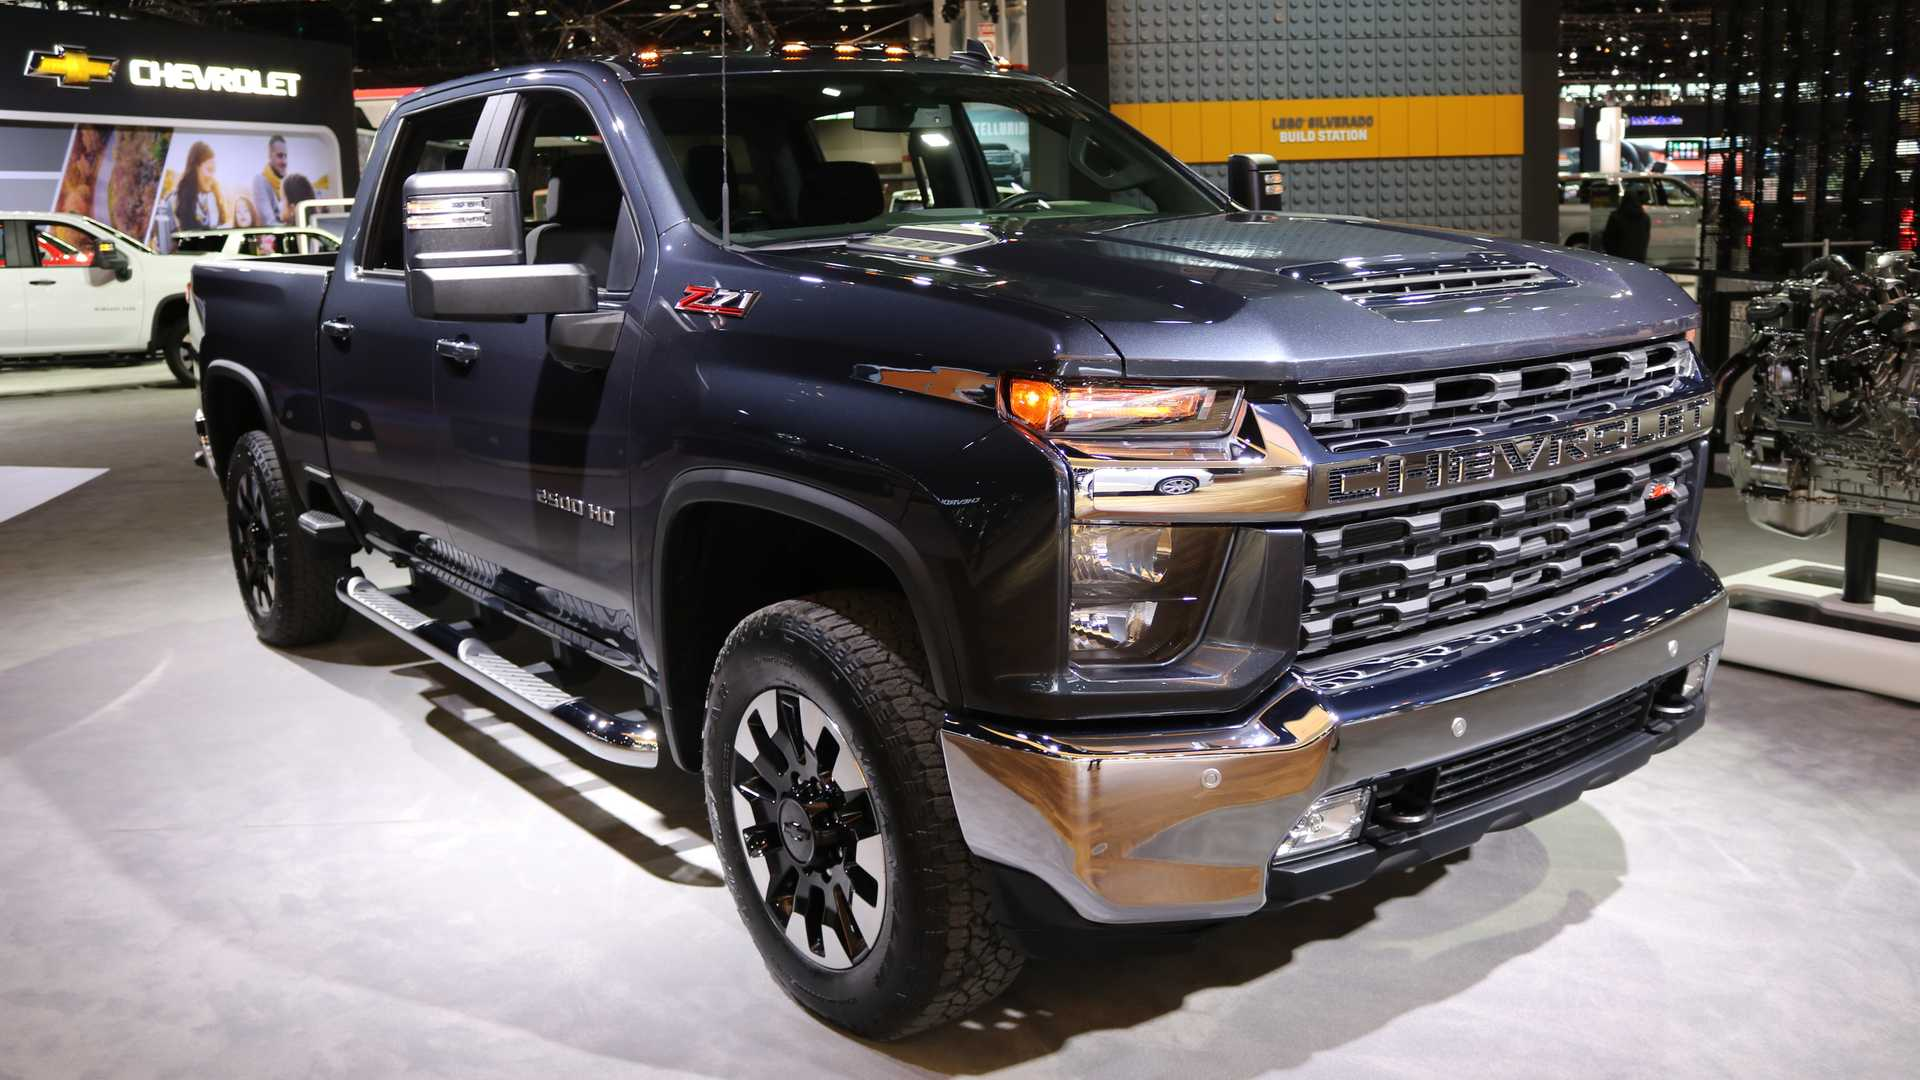 85 A 2020 Chevrolet Silverado Images Price And Review